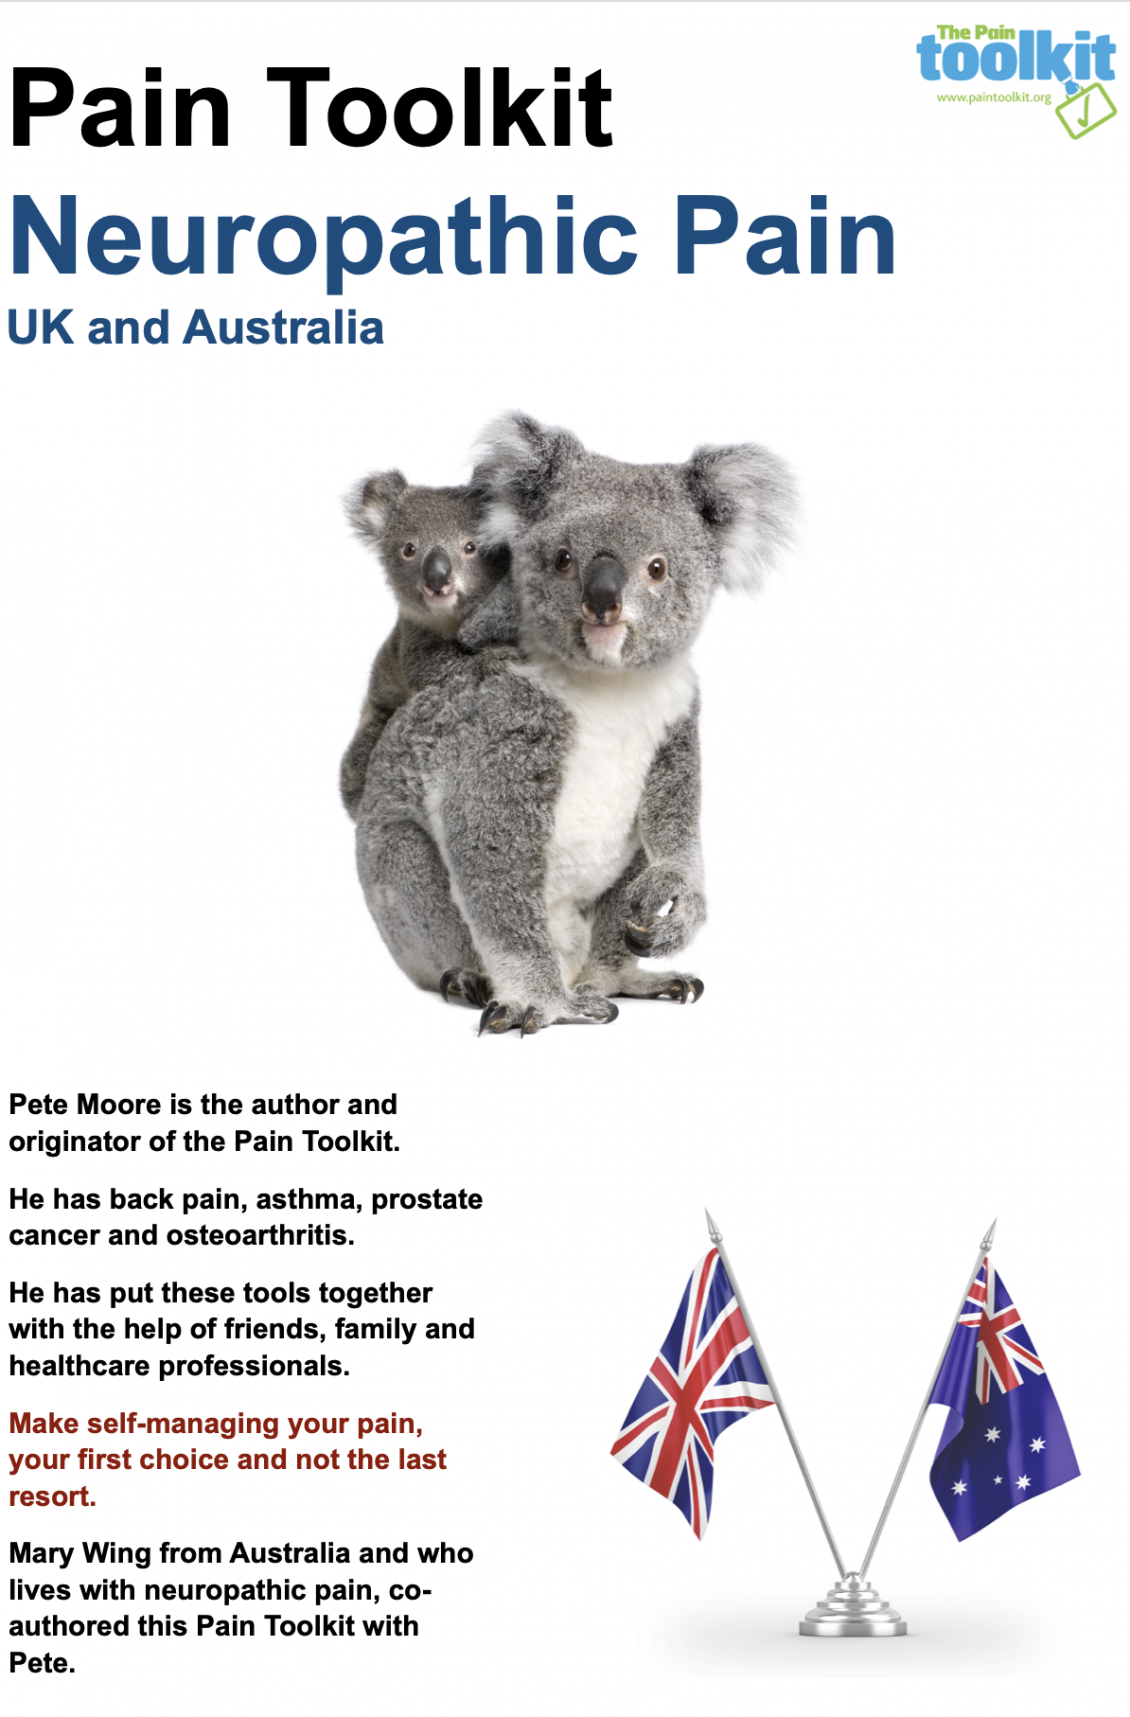 Pain Toolkit Neuropathic Pain UK and Australia